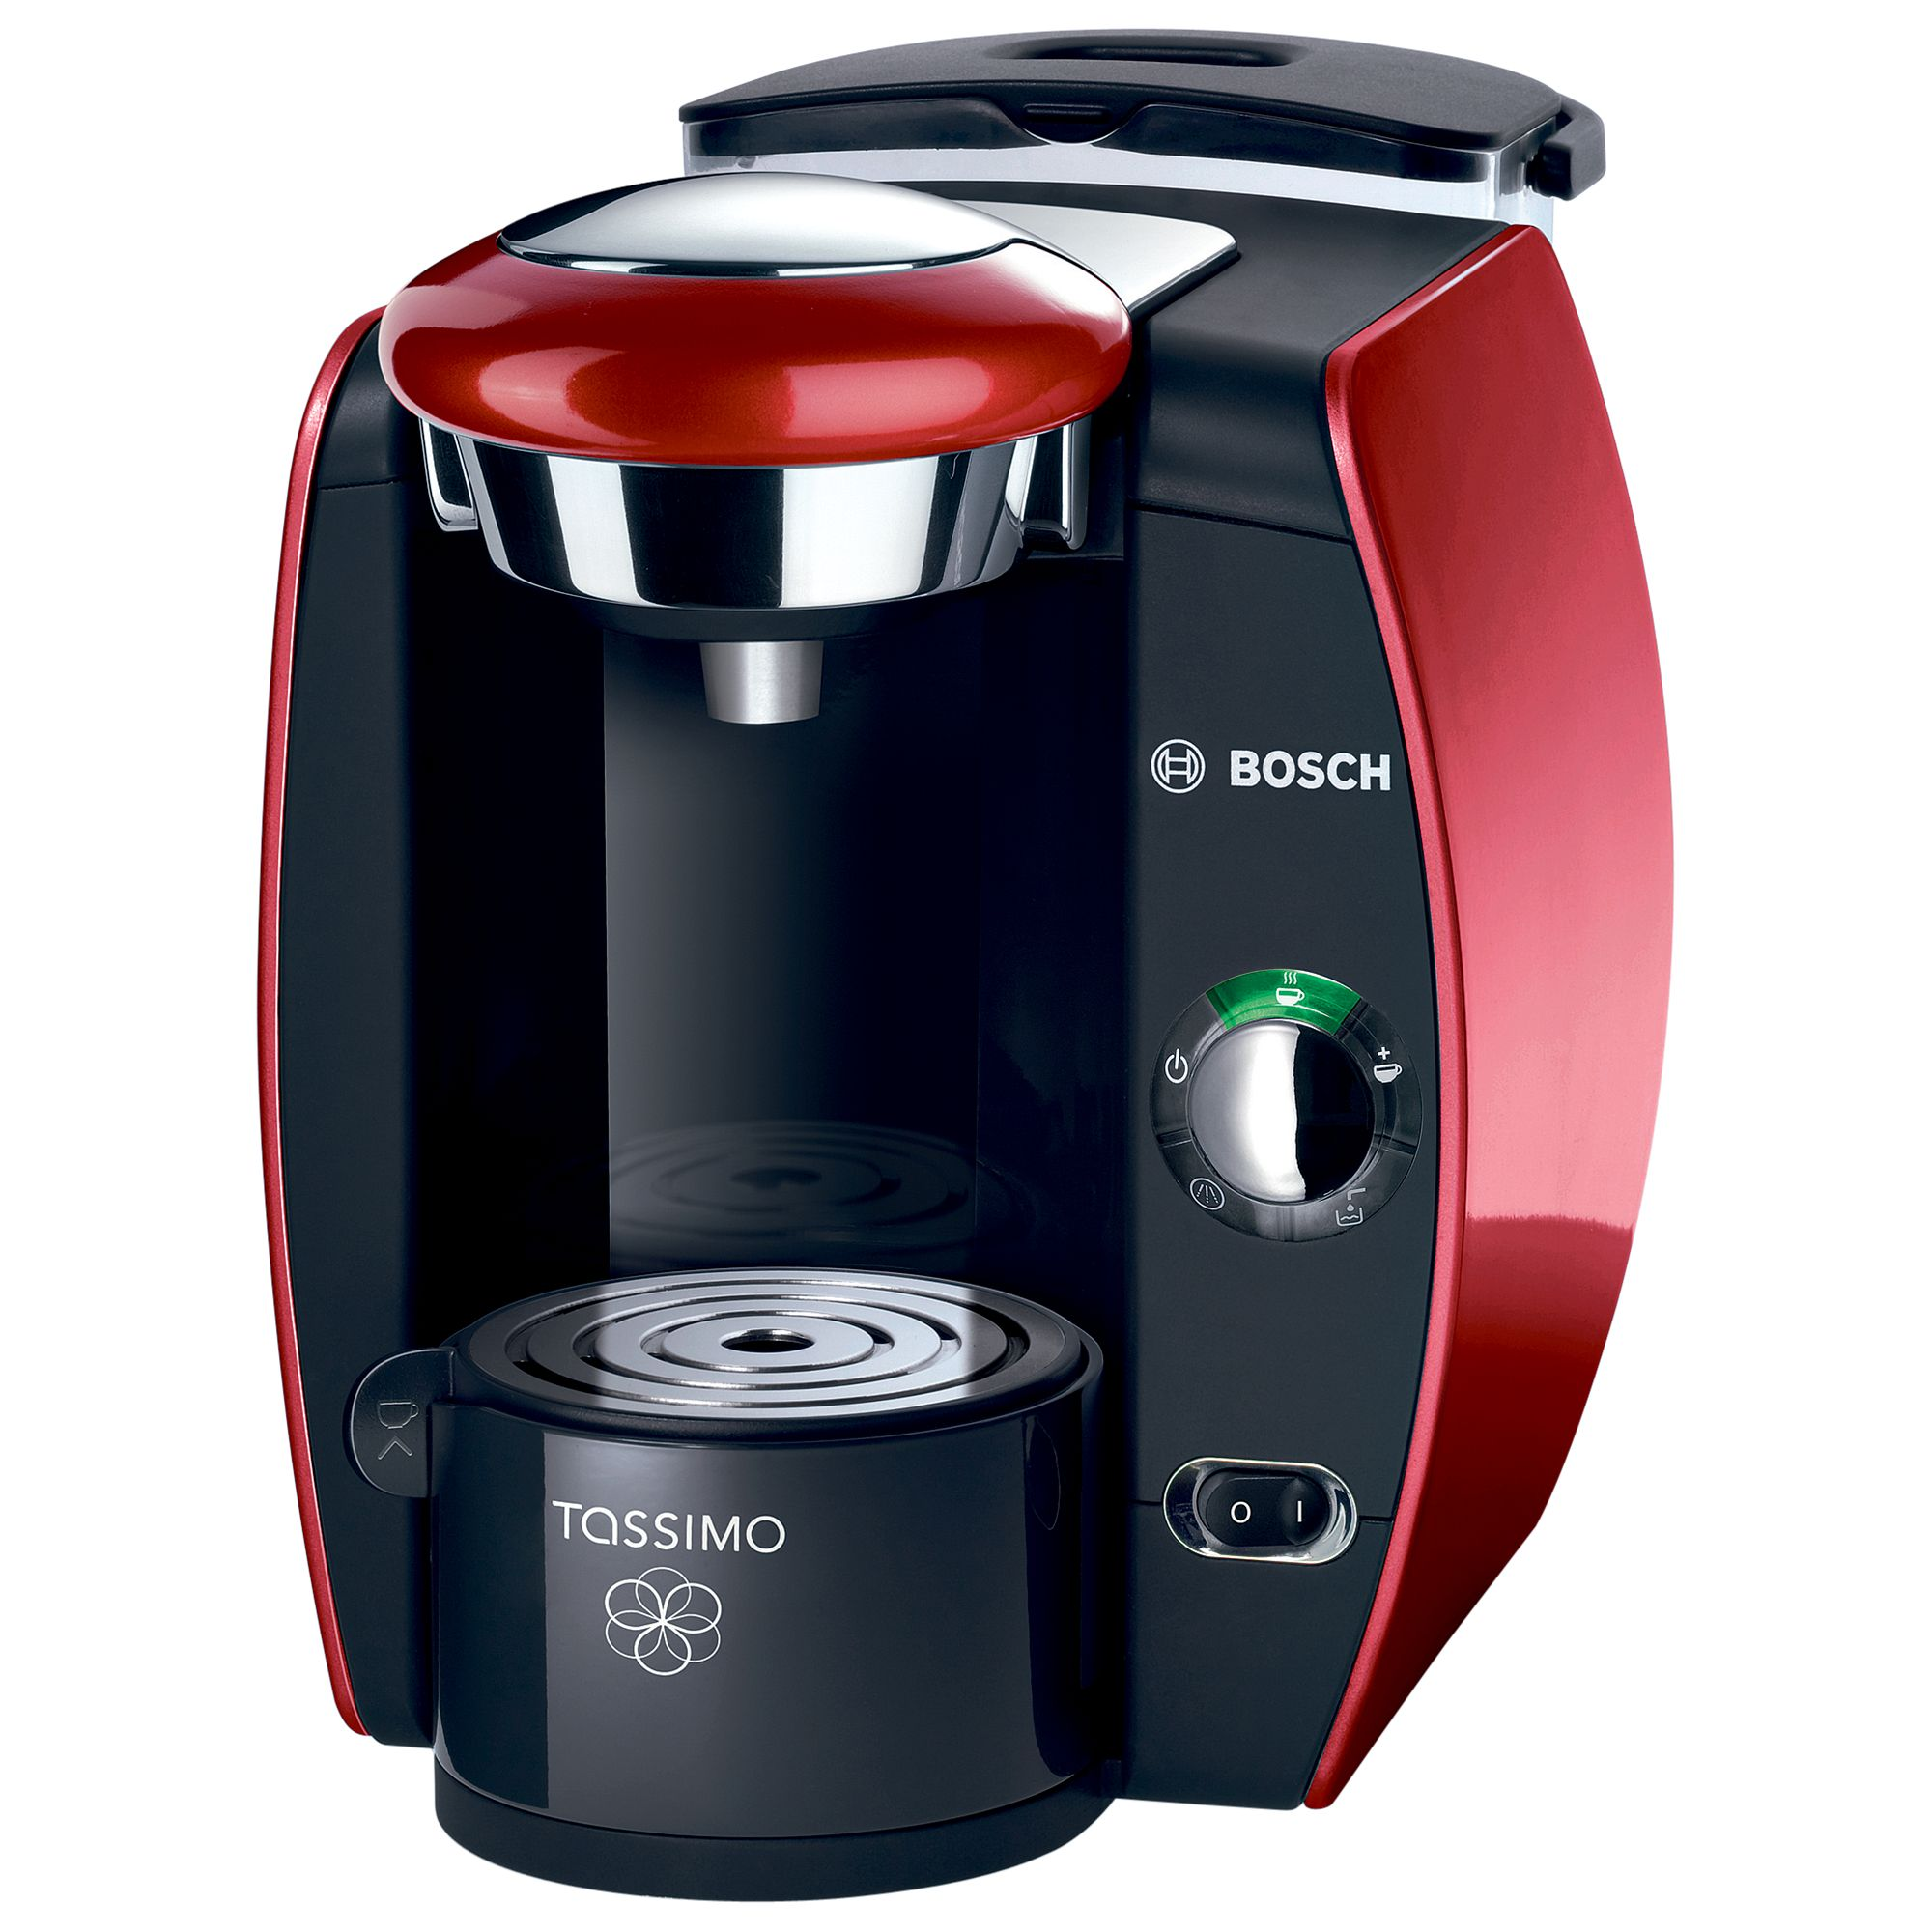 John Lewis Bosch Tassimo Coffee Maker : Buy Tassimo Fidelia Coffee Machine by Bosch John Lewis